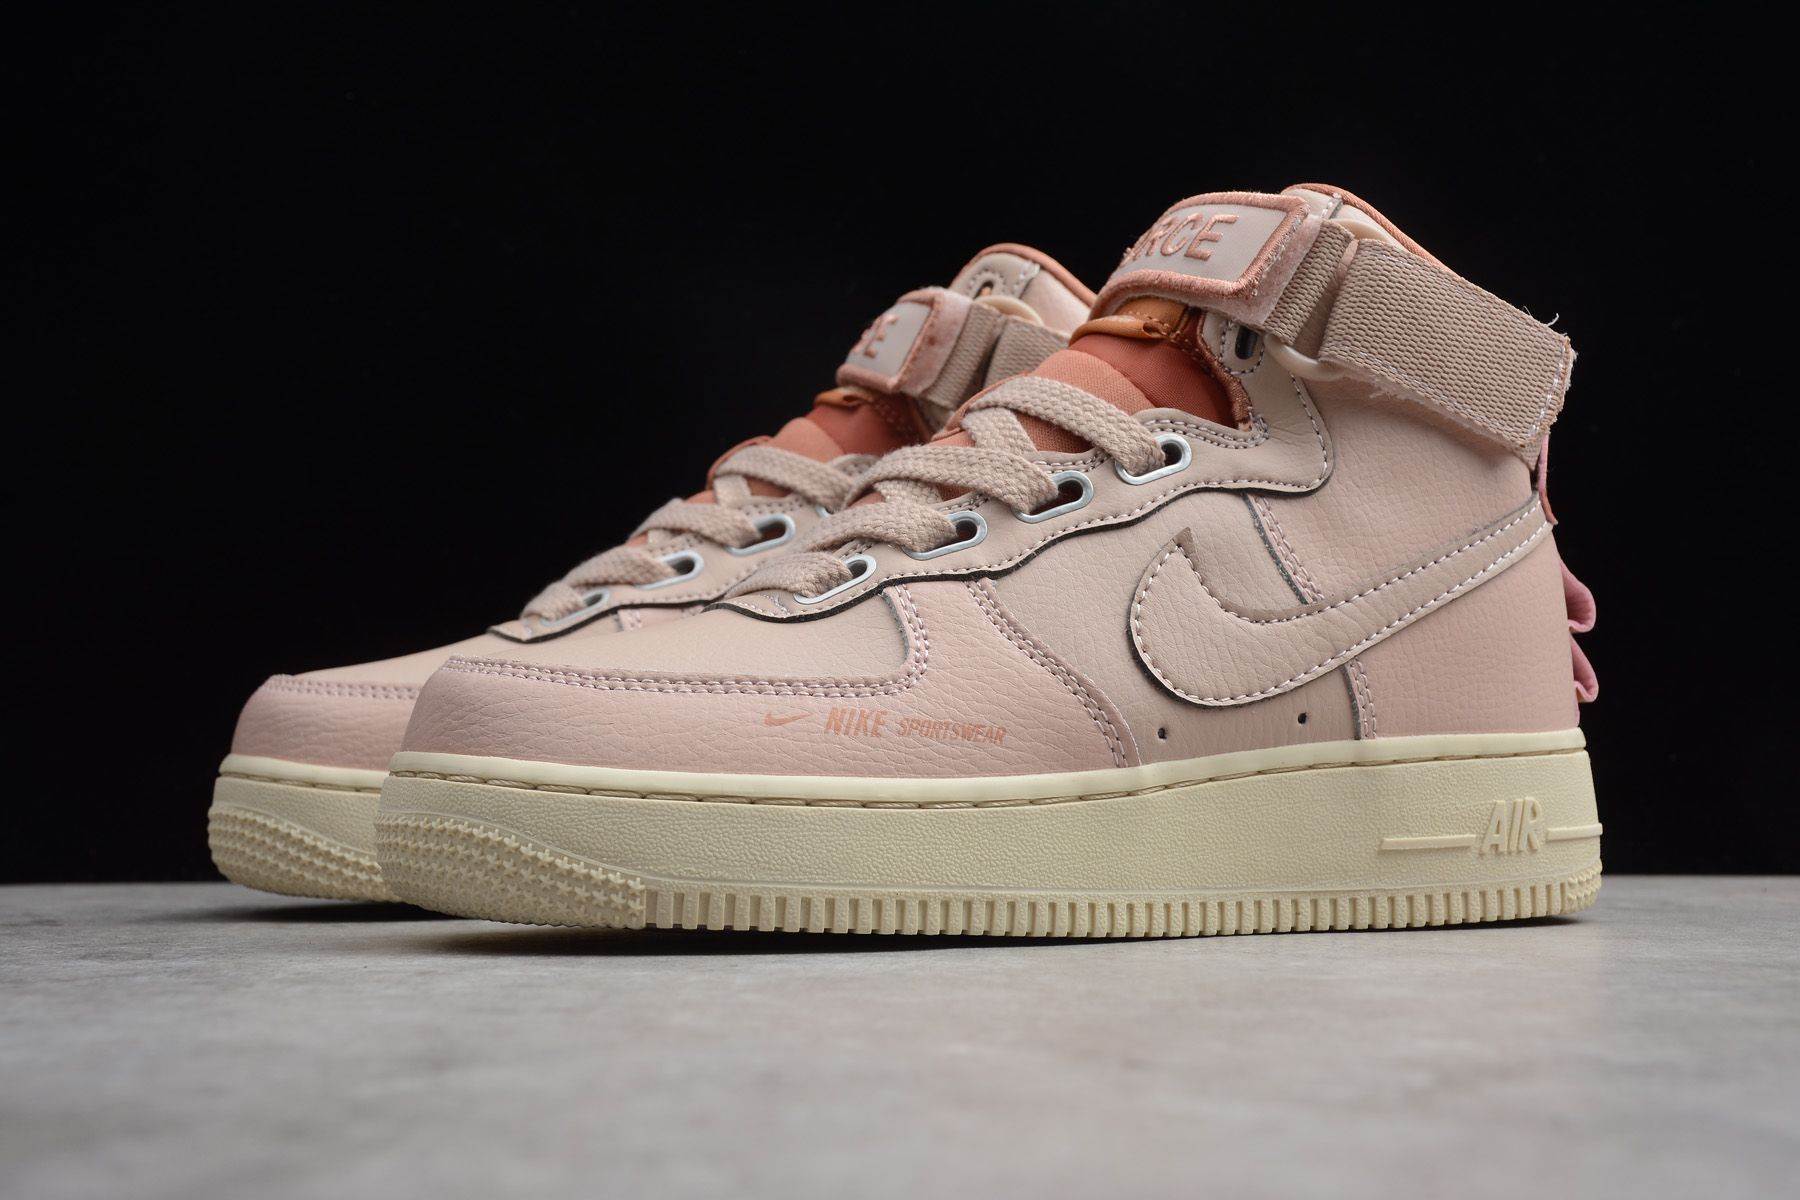 pretty nice d17b3 e0745 Women s Nike Air Force 1 High Utility Particle Beige Terra Blush-LT Cream  AJ7311-200